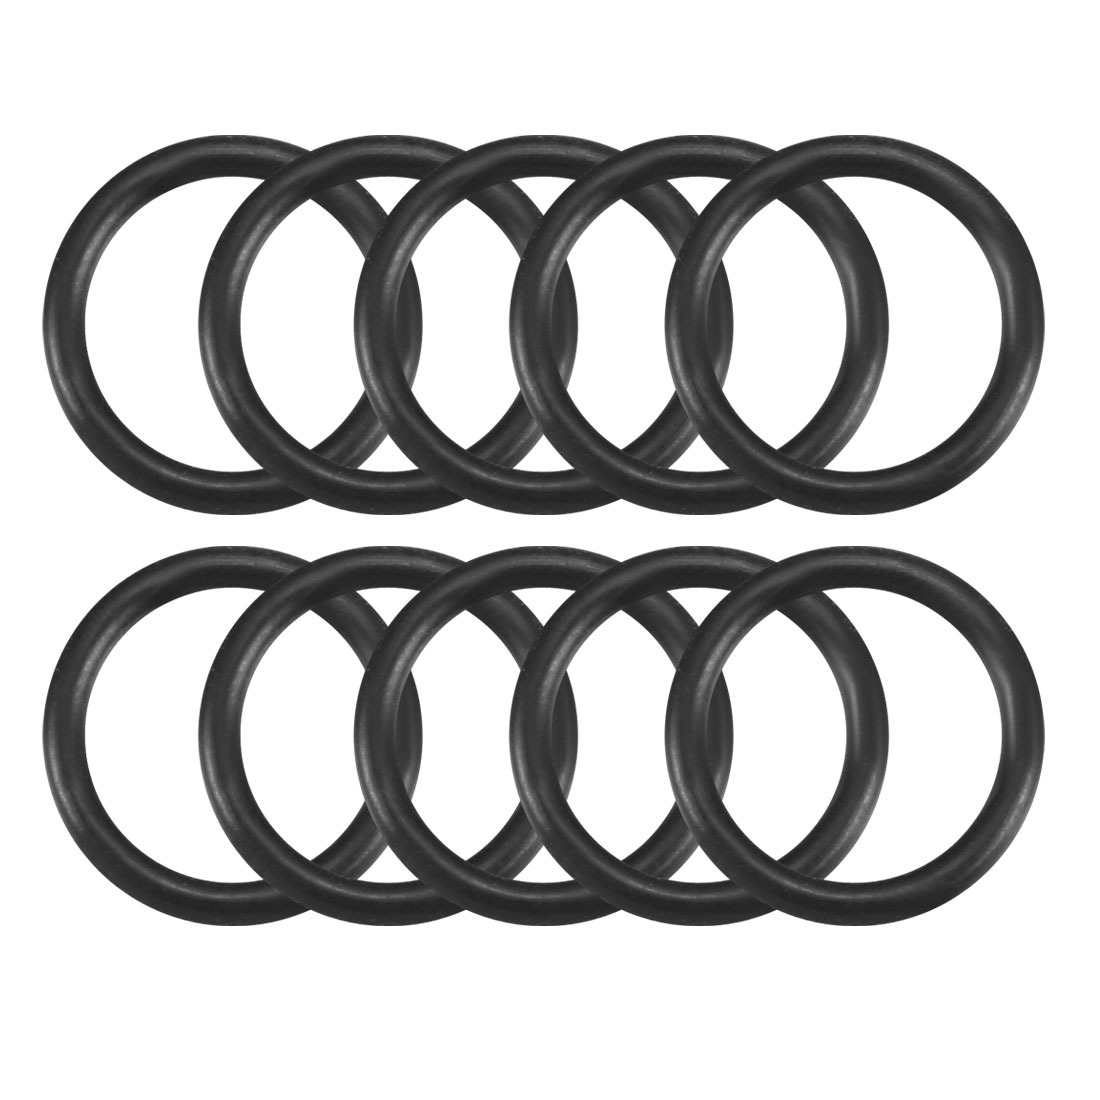 10 Pcs Black Rubber Oil Seal O Ring Sealing Gaskets 12mm x 9mm x 1.5mm